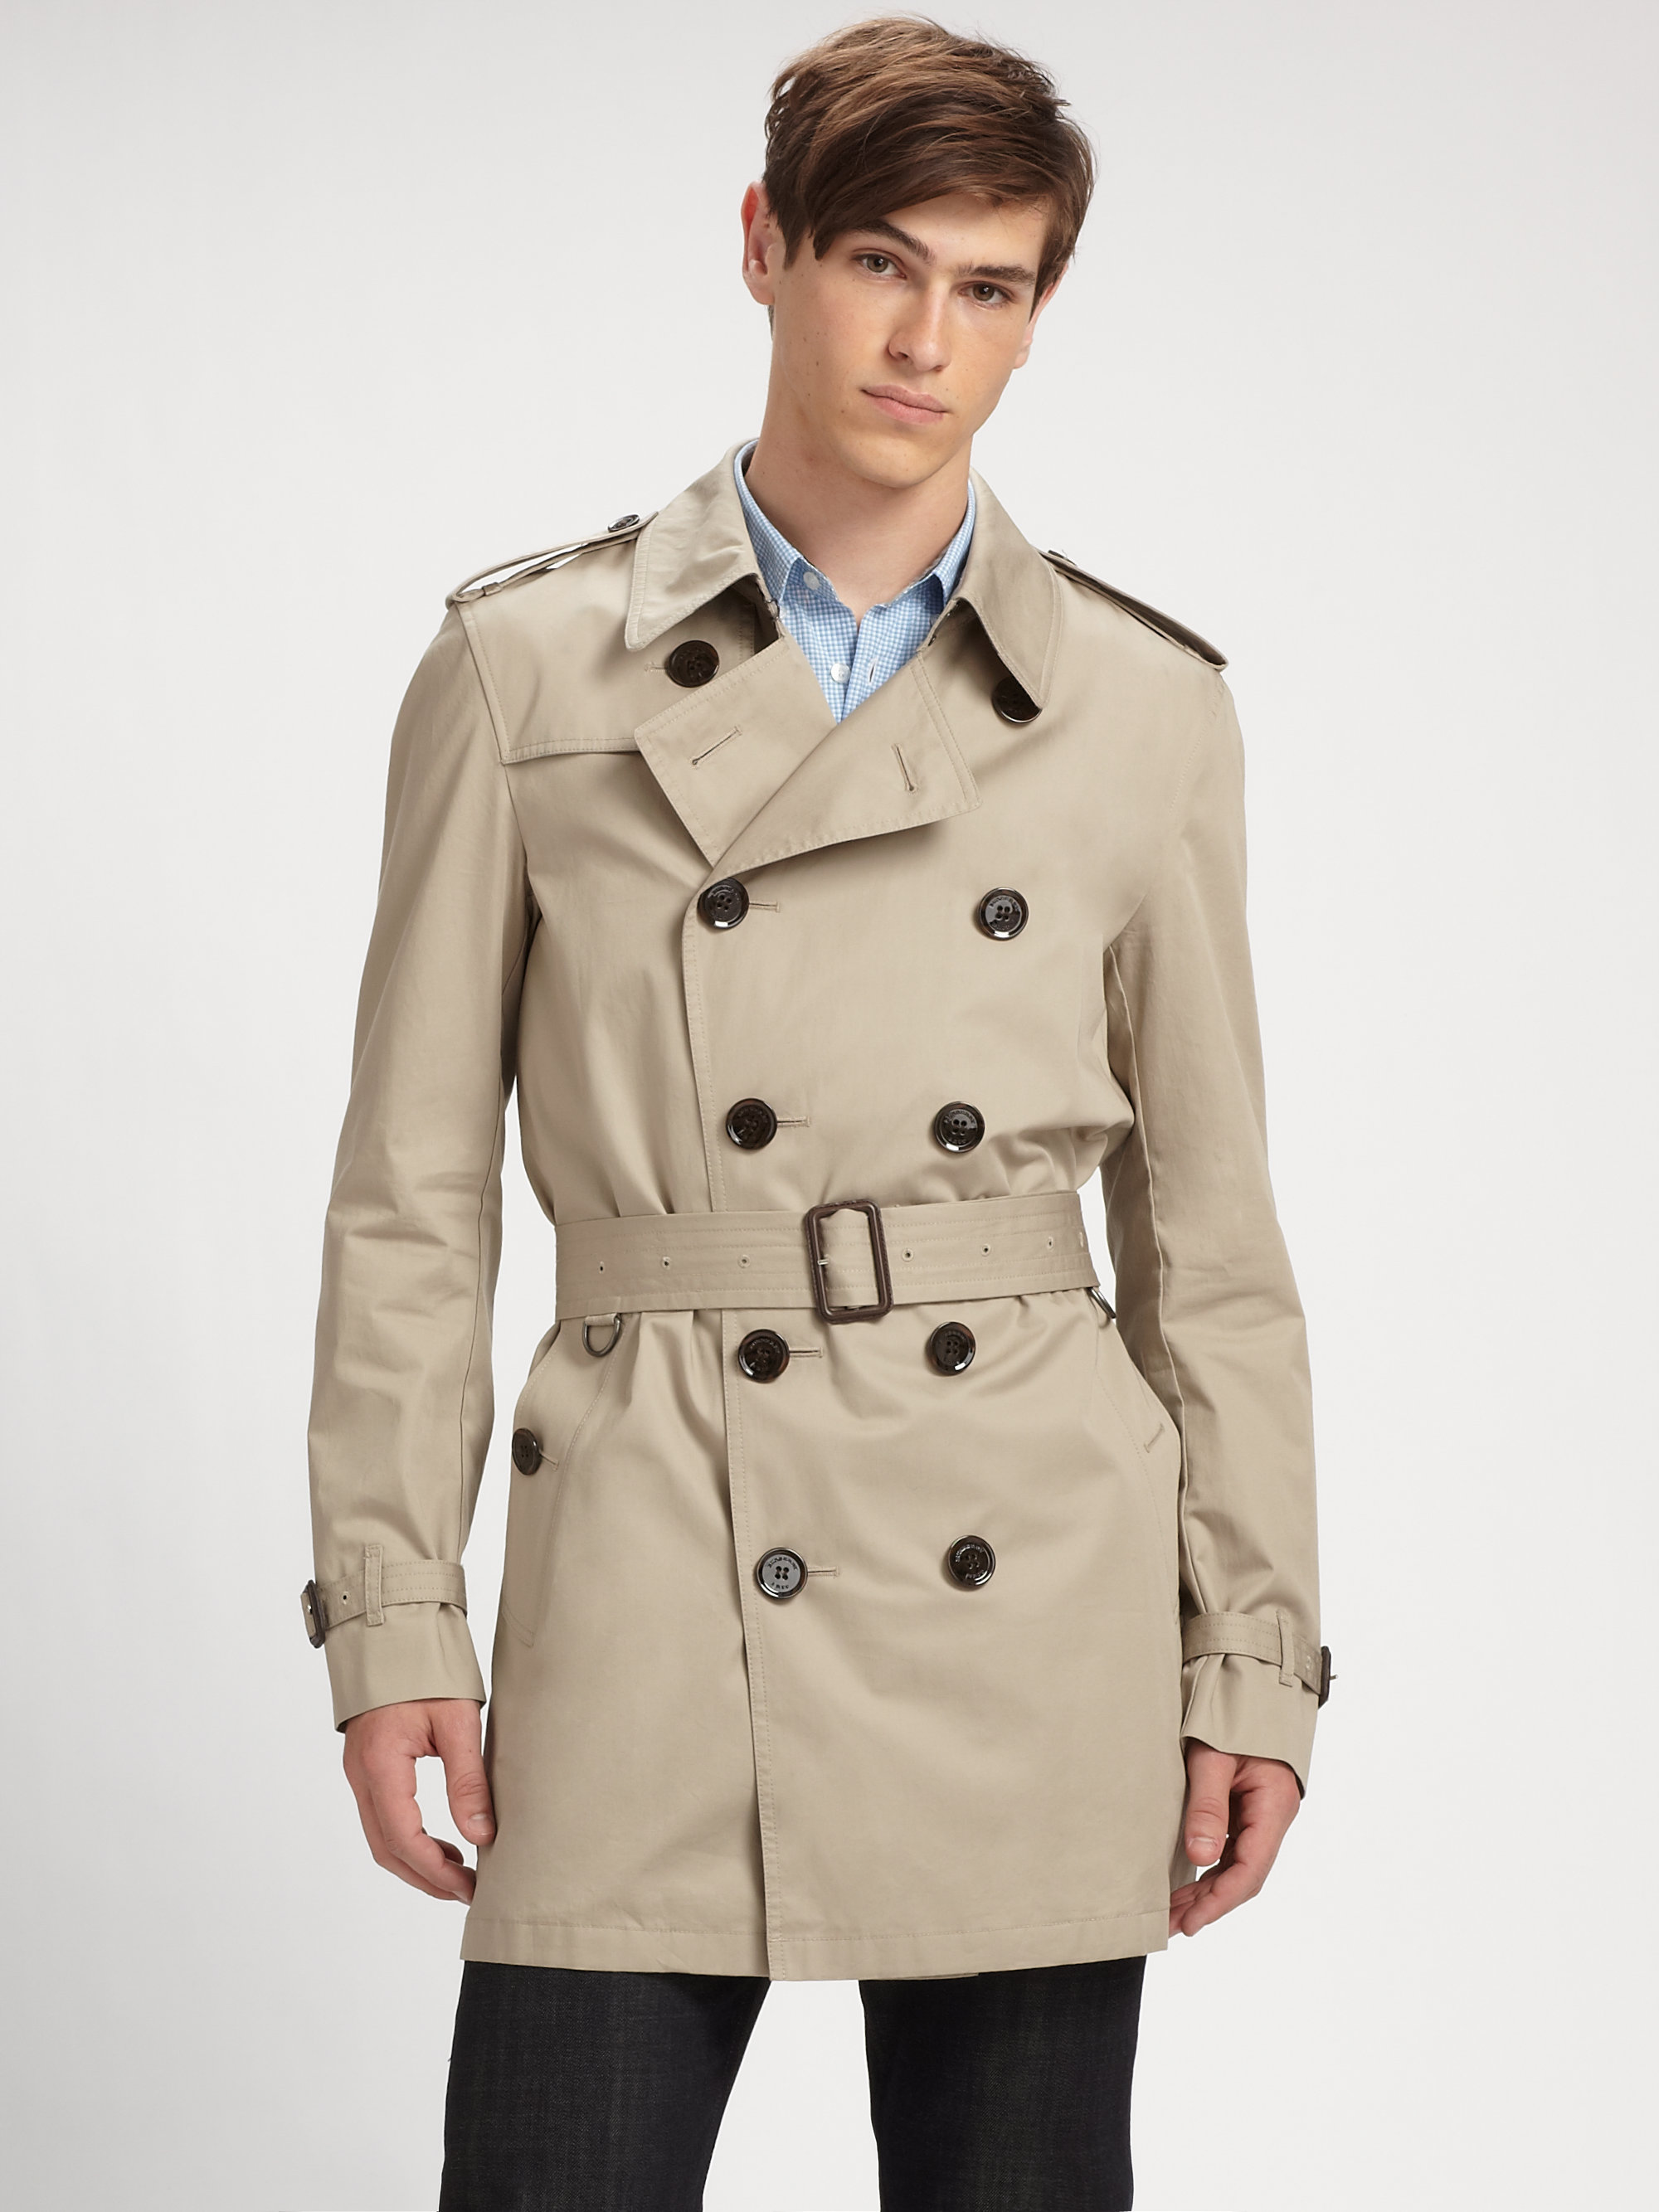 6b2a6f978c3 Burberry Brit Trench Coat in Brown for Men - Lyst